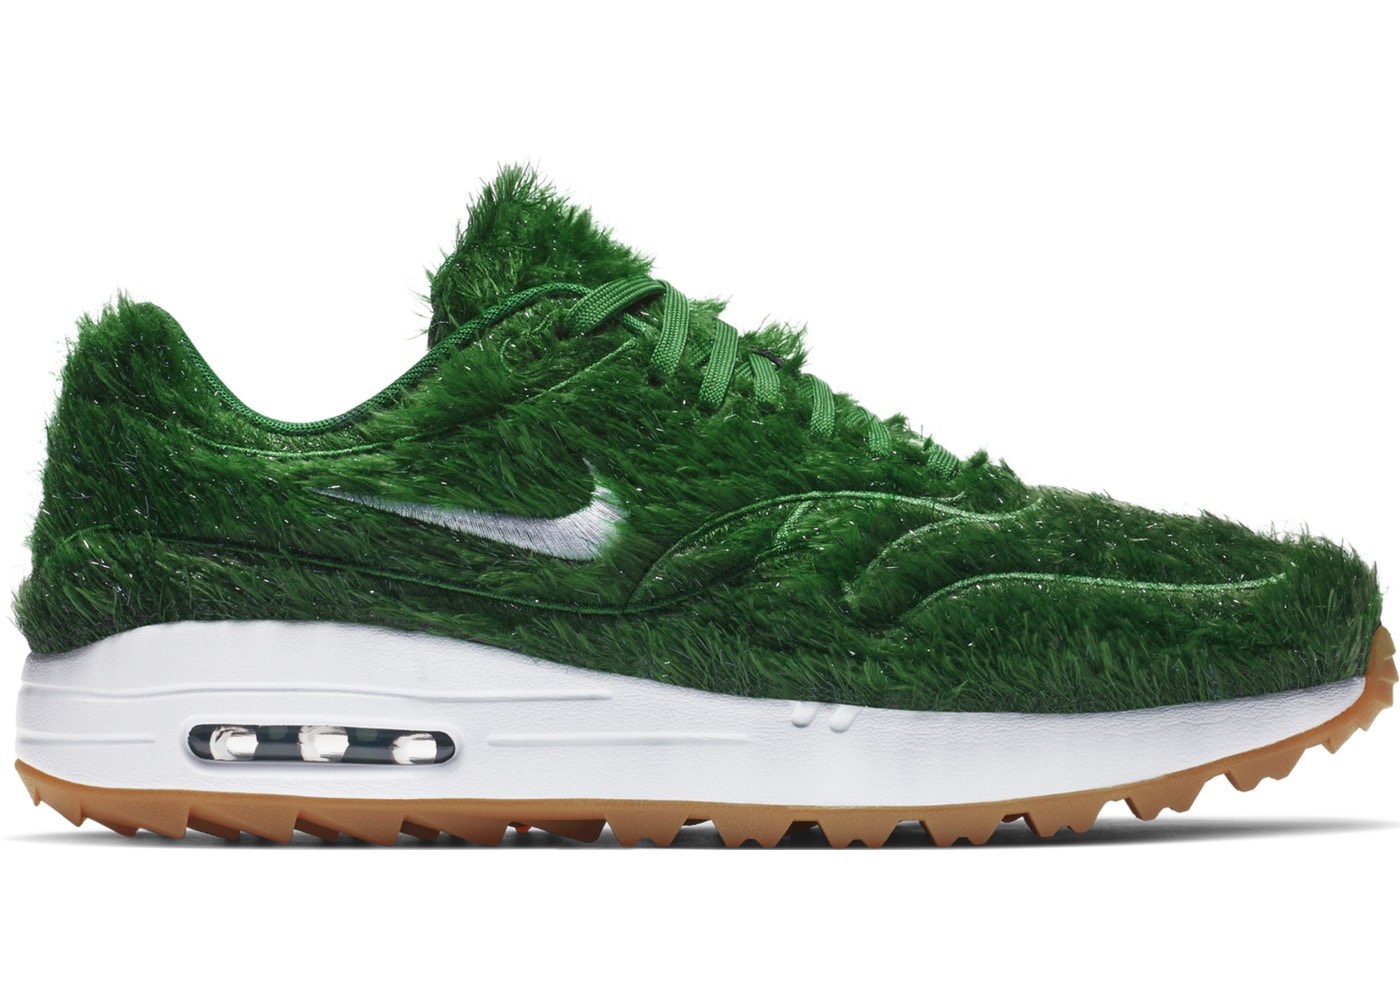 reputable site d8605 04de9 Air Max 1 Golf Grass